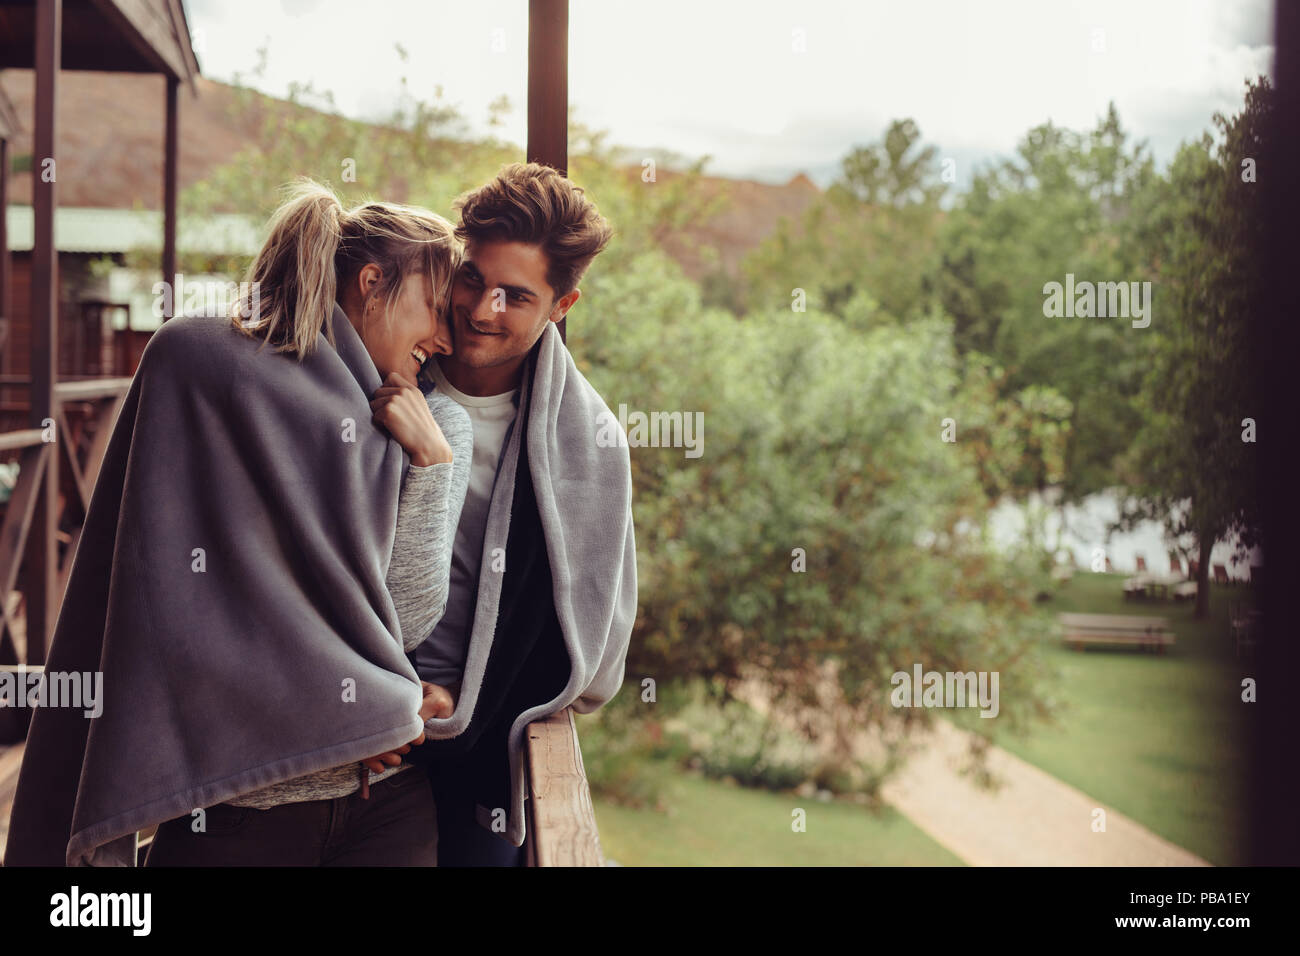 Loving man and woman standing in their hotel room balcony wrapped in blanket. Romantic couple in a blanket standing together on a winter holiday. - Stock Image